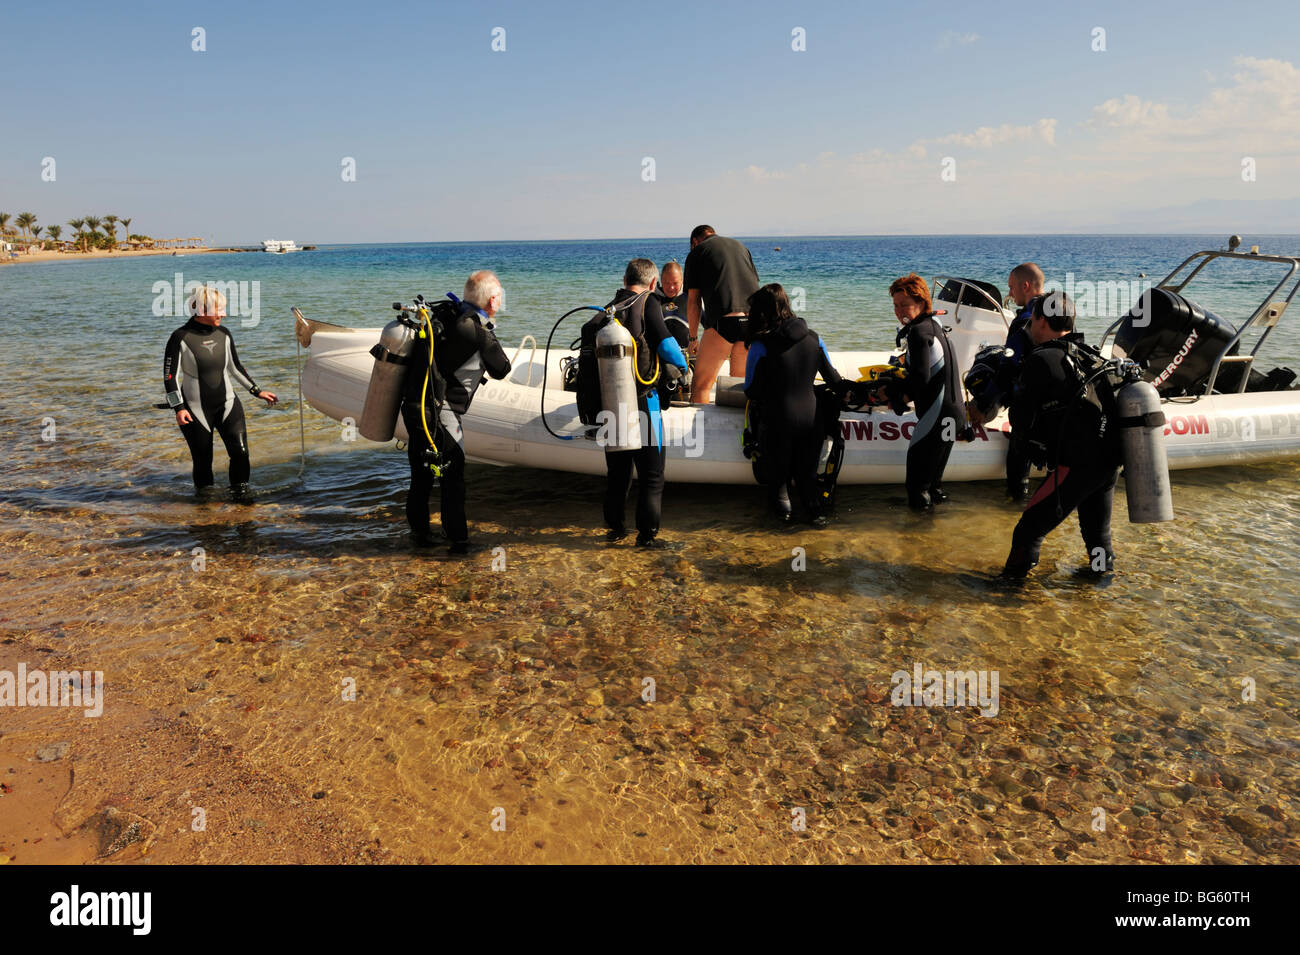 """Scuba divers getting into dive boat from shore, Nuweiba, """"Red Sea"""", Sinai, Egypt Stock Photo"""